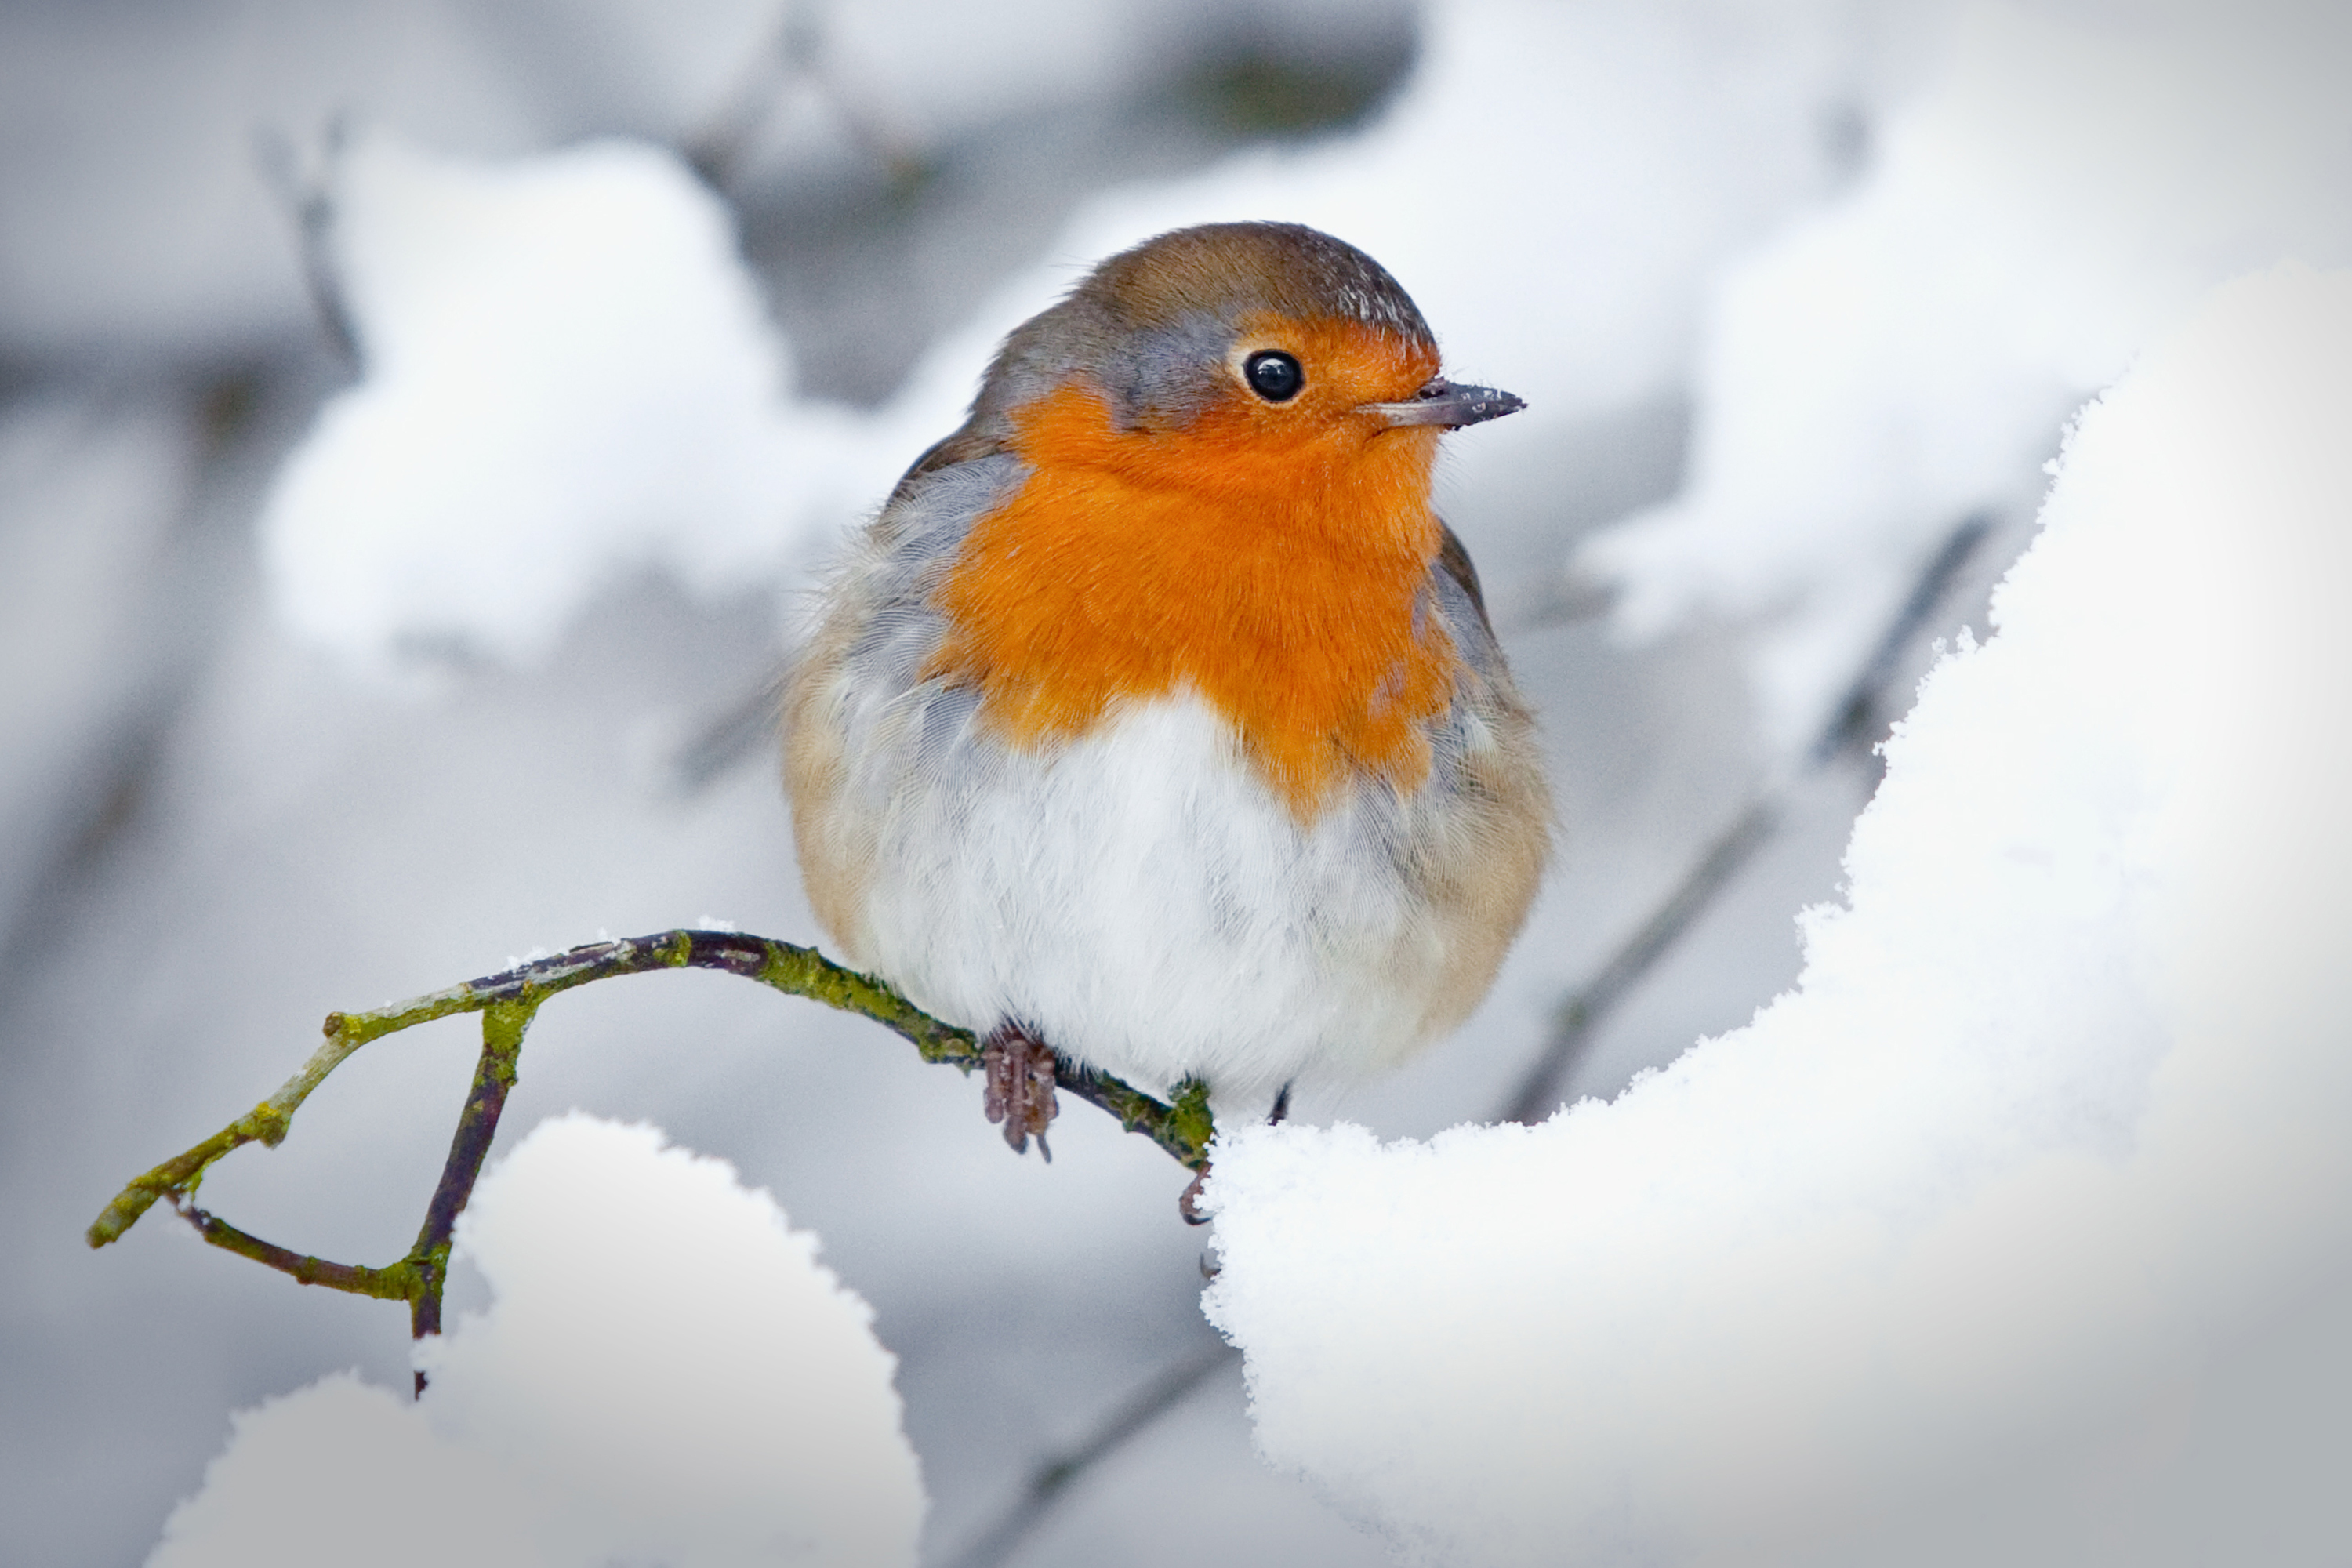 Robin in a winter snow scene sitting on a branch (iStock)